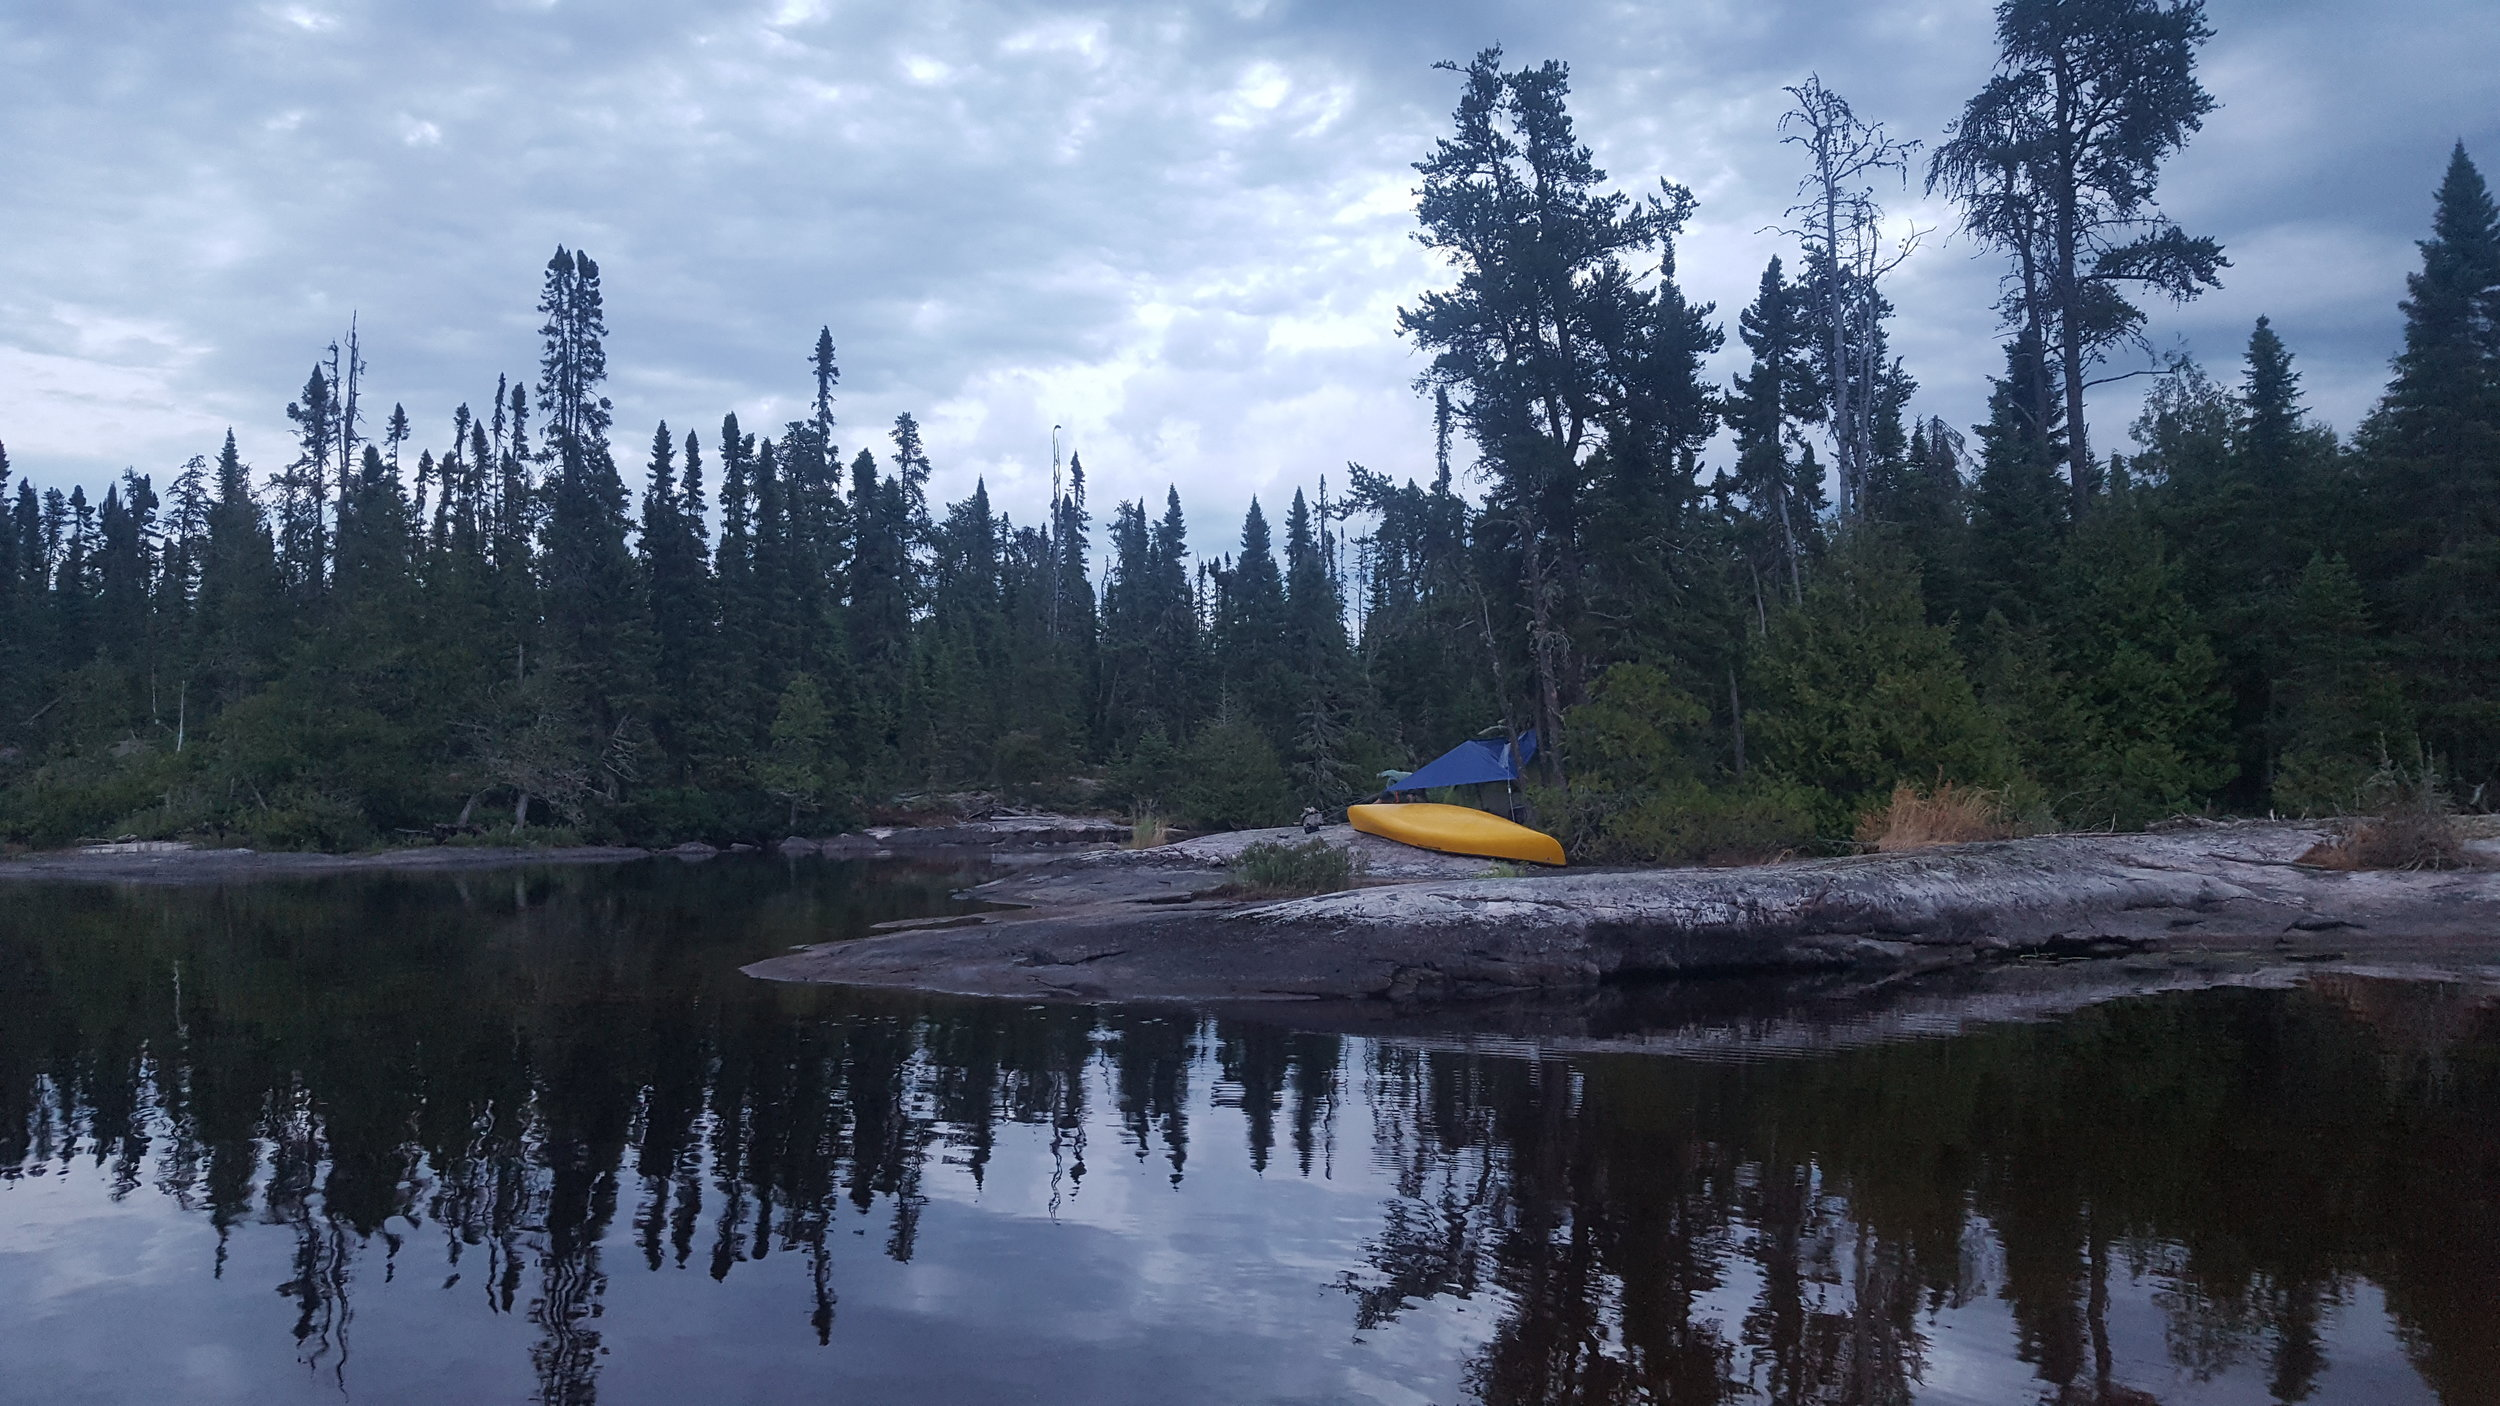 Camp 3 on Lower Wabakimi Lake